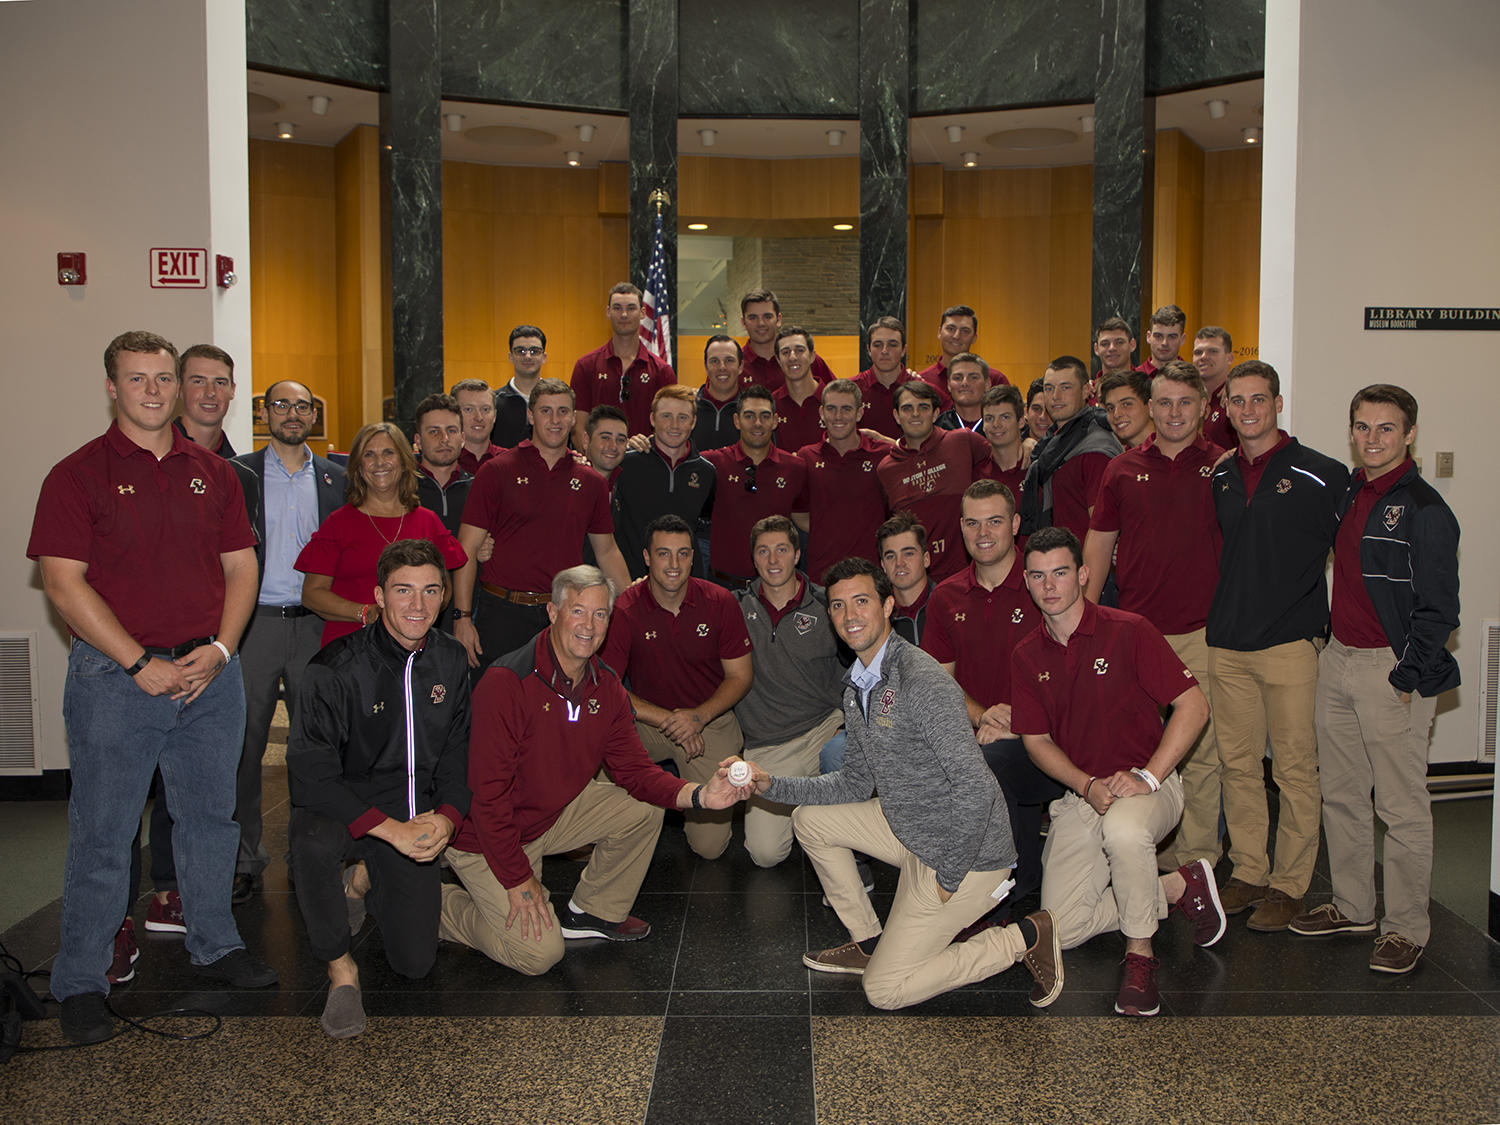 """The Boston College men's baseball team visited the Hall of Fame in honor of the """"Baseball and ALS"""" exhibit. (Milo Stewart Jr./National Baseball Hall of Fame and Museum)"""